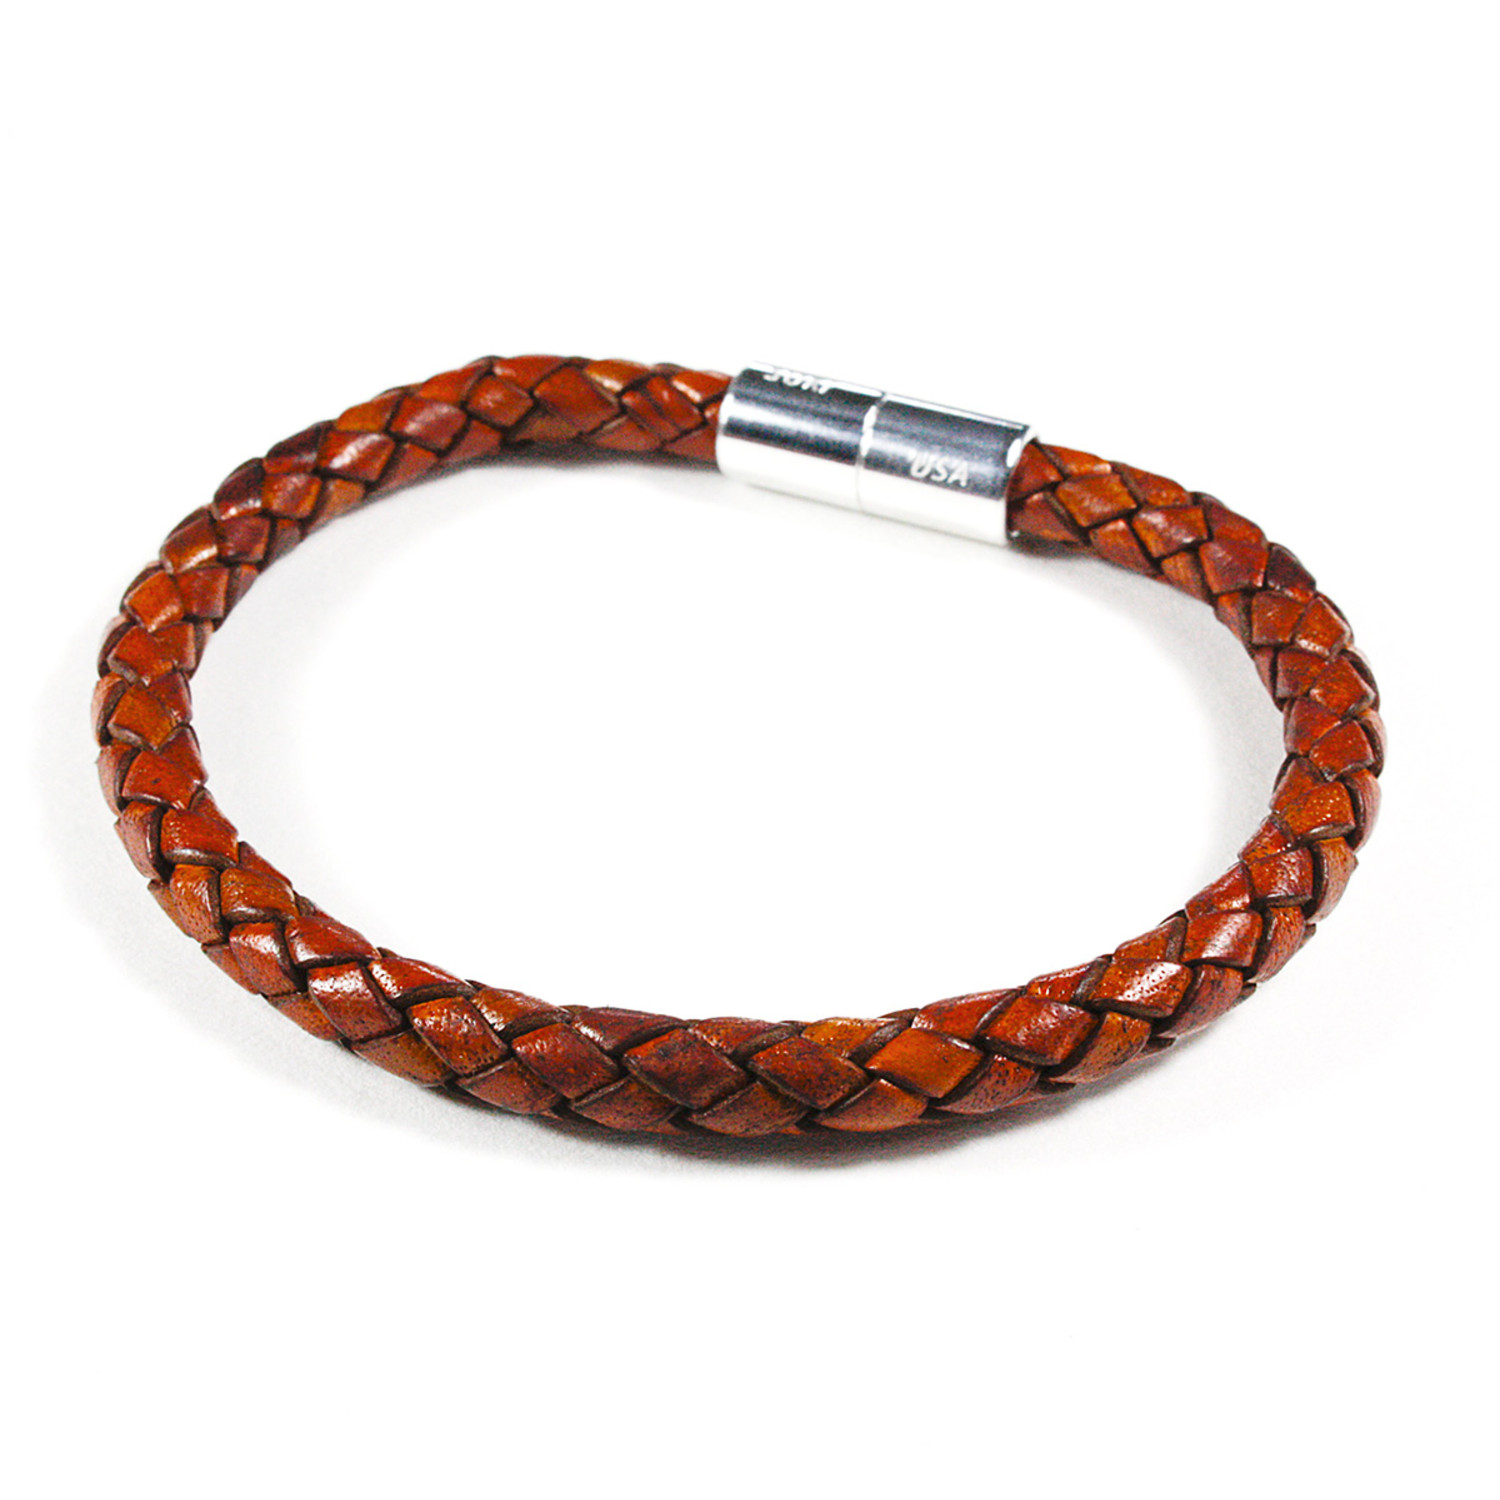 Pro Leather Magnet Therapy Bracelet Medium Brown 6mm